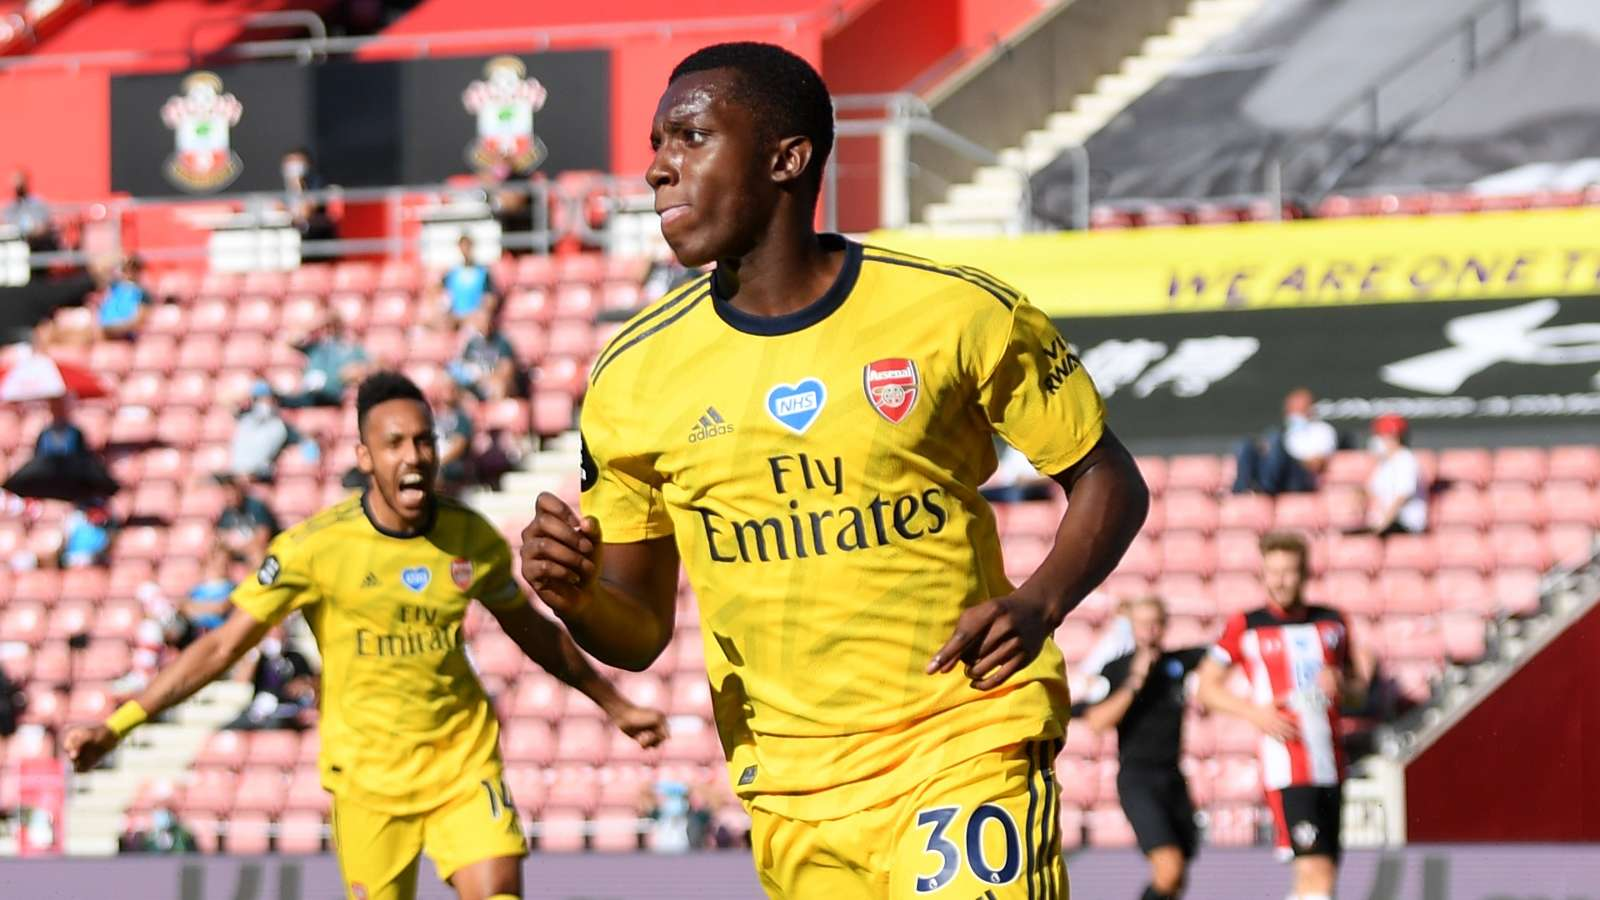 Nketiah Arsenal 2020